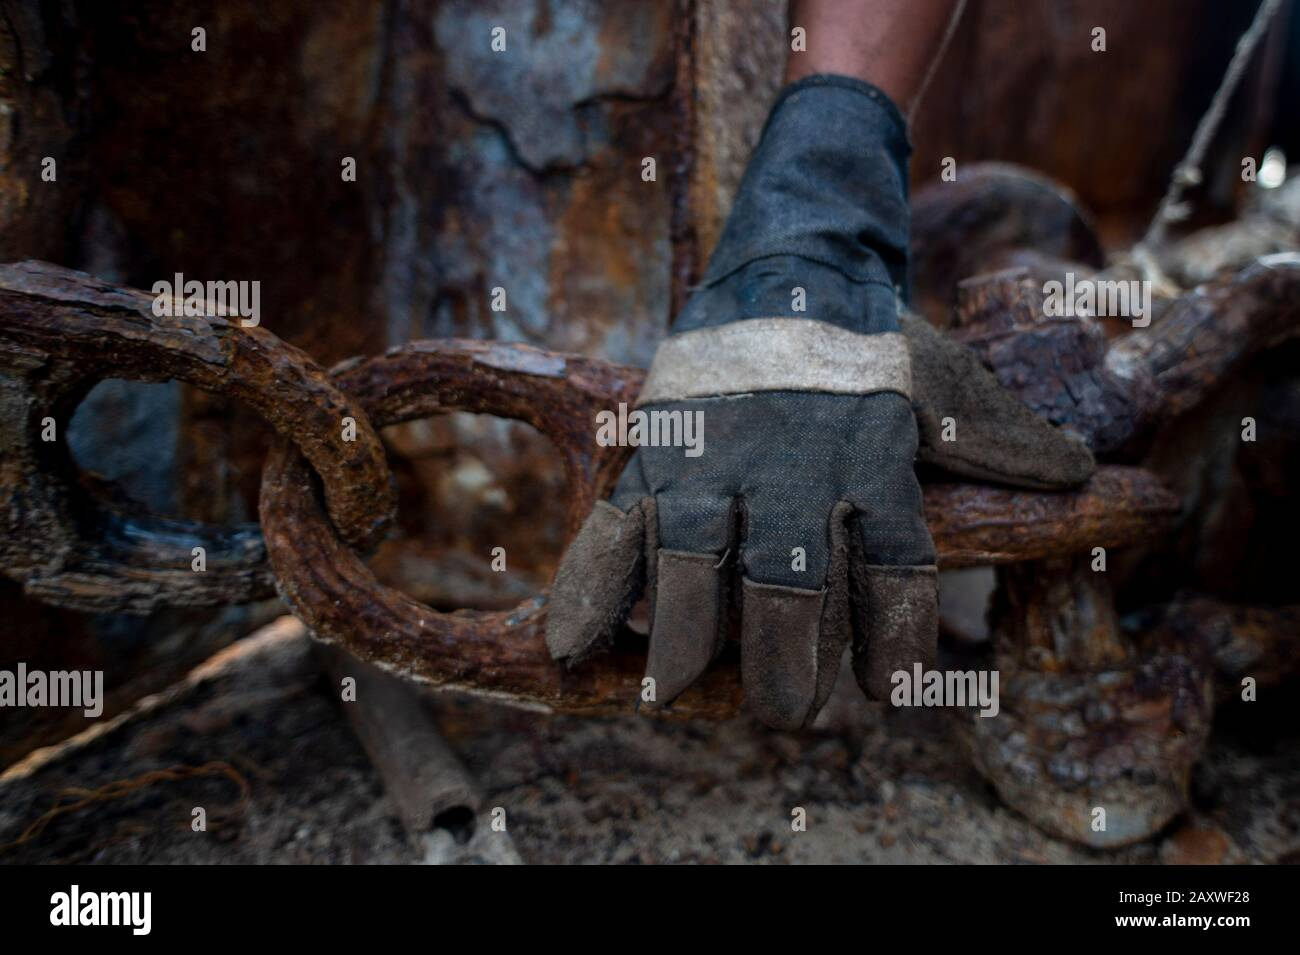 (200213) -- JAKARTA, Feb. 13, 2020 (Xinhua) -- A worker catches a rusty chain at a ship breaking yard in Cilincing of Jakarta, Indonesia, Feb. 13, 2020. Ship breaking is a recycling process in which vessels are taken apart and sold as scrap metal. (Xinhua/Agung Kuncahya B.) Stock Photo